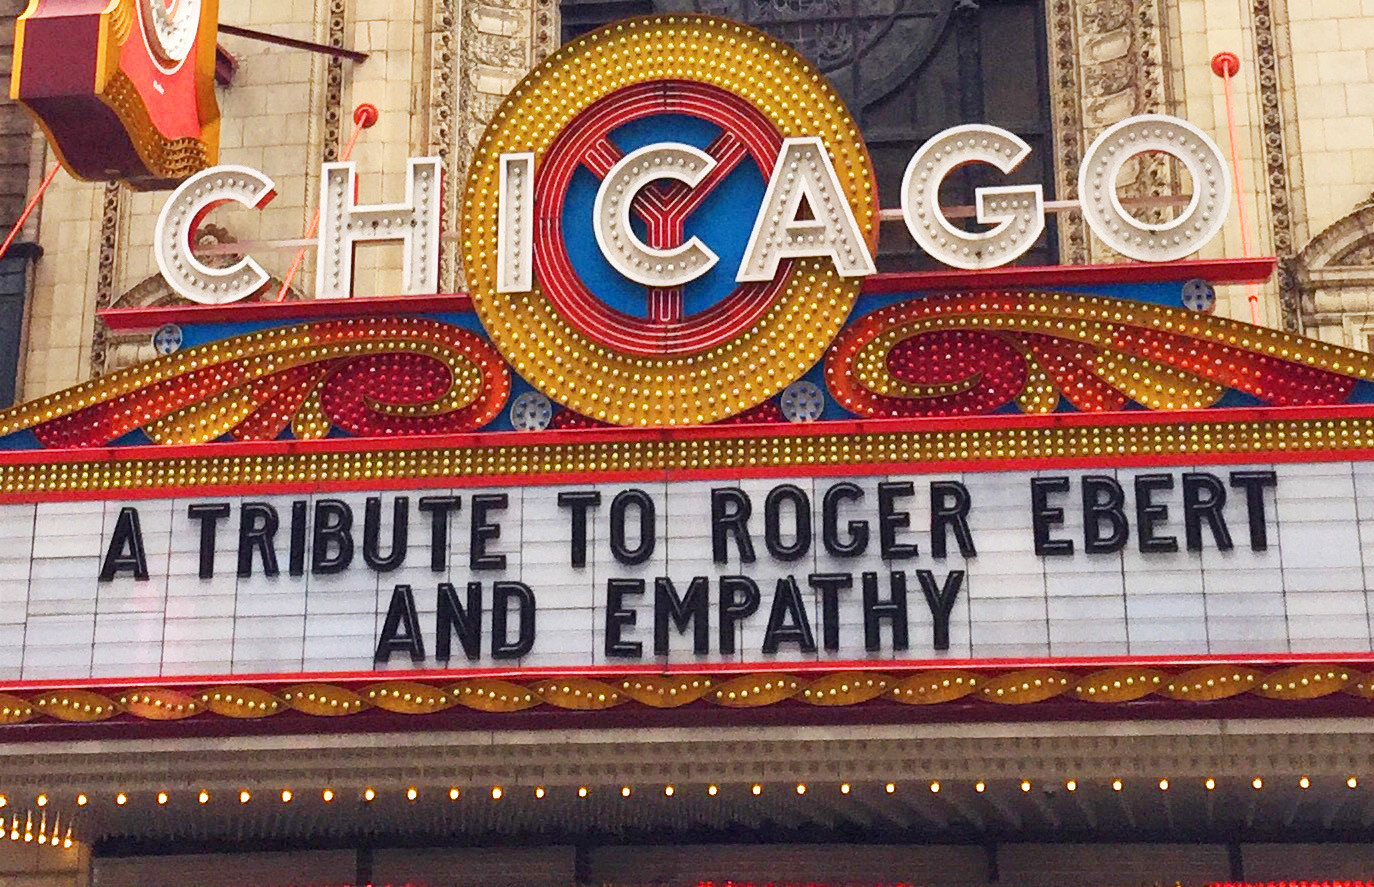 roger ebert essay on dying Dying, surviving, or aging with grace  (the essay-like story about the deceased written by  this potpourri of old interviews with and by roger ebert.